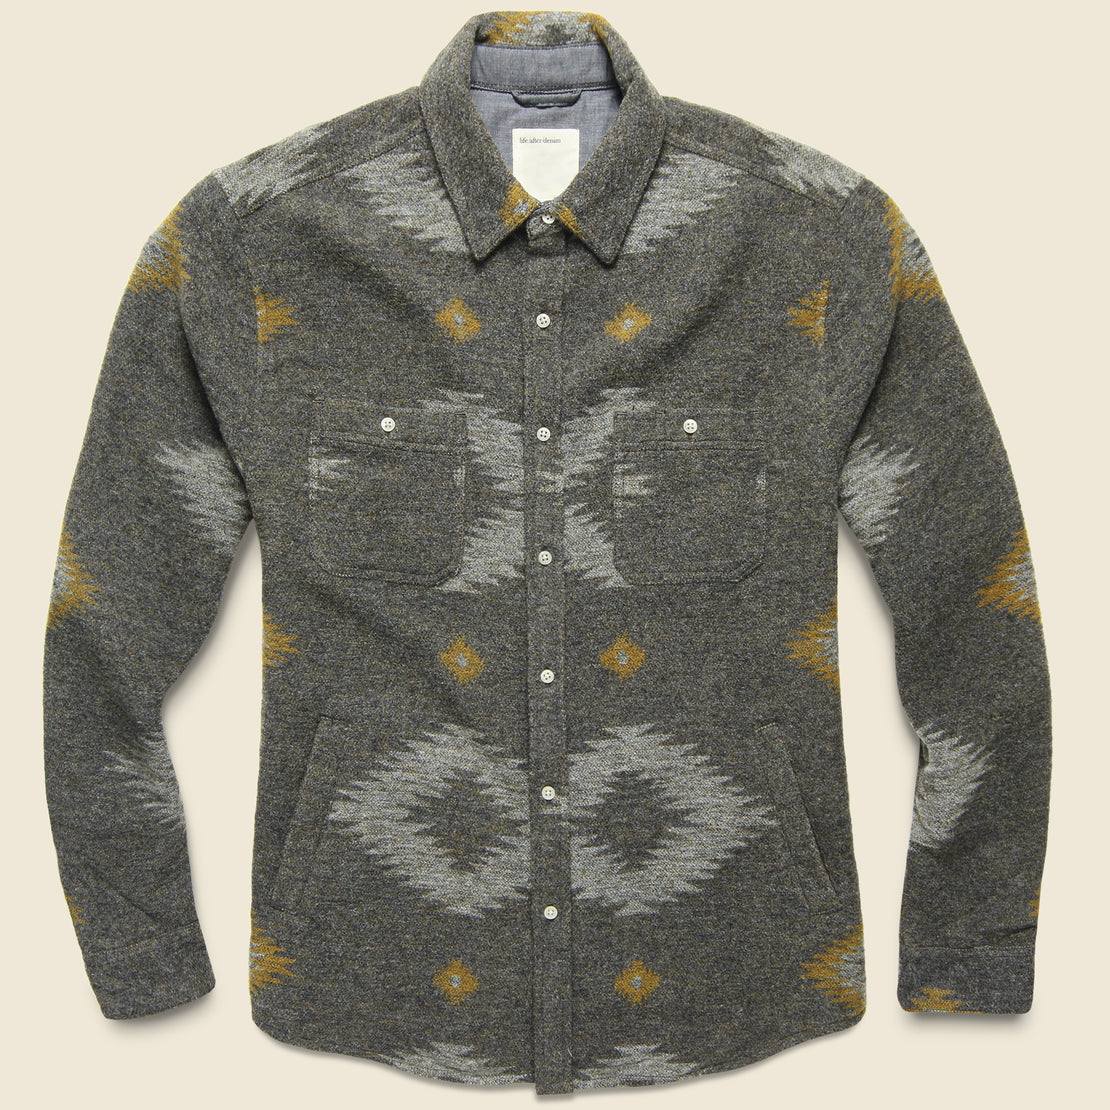 Life After Denim Warrior Shirt Jacket - Heather Charcoal